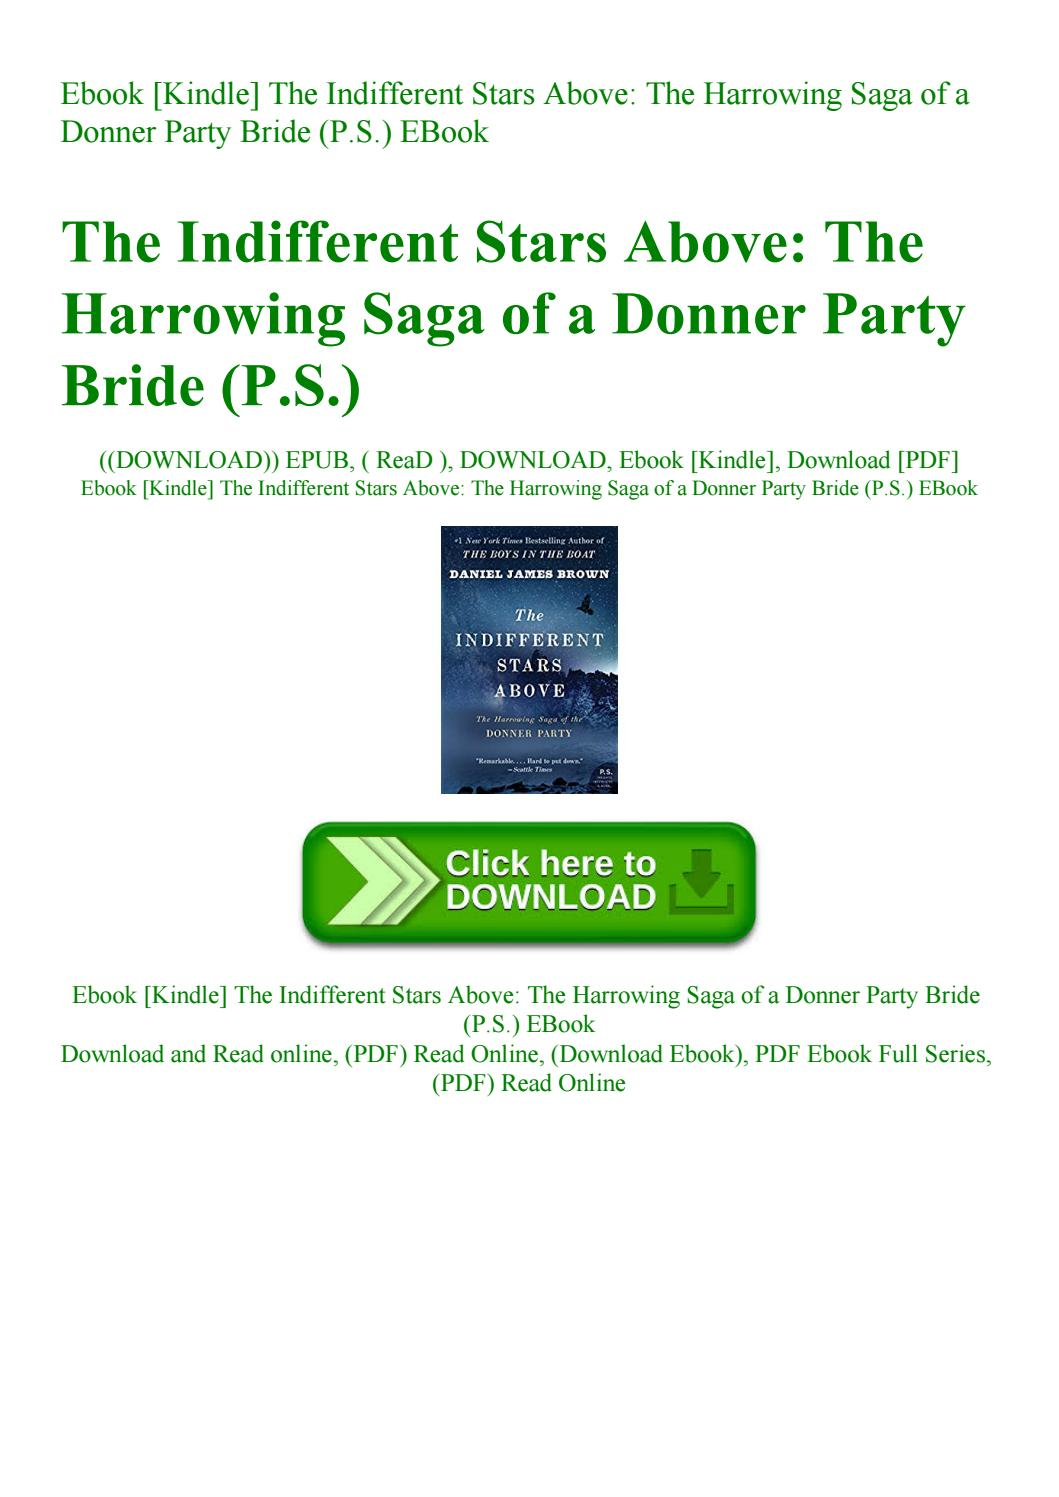 Ebook Kindle The Indifferent Stars Above The Harrowing Saga Of A Donner Party Bride P S Ebook By Eberfbfdtr Issuu